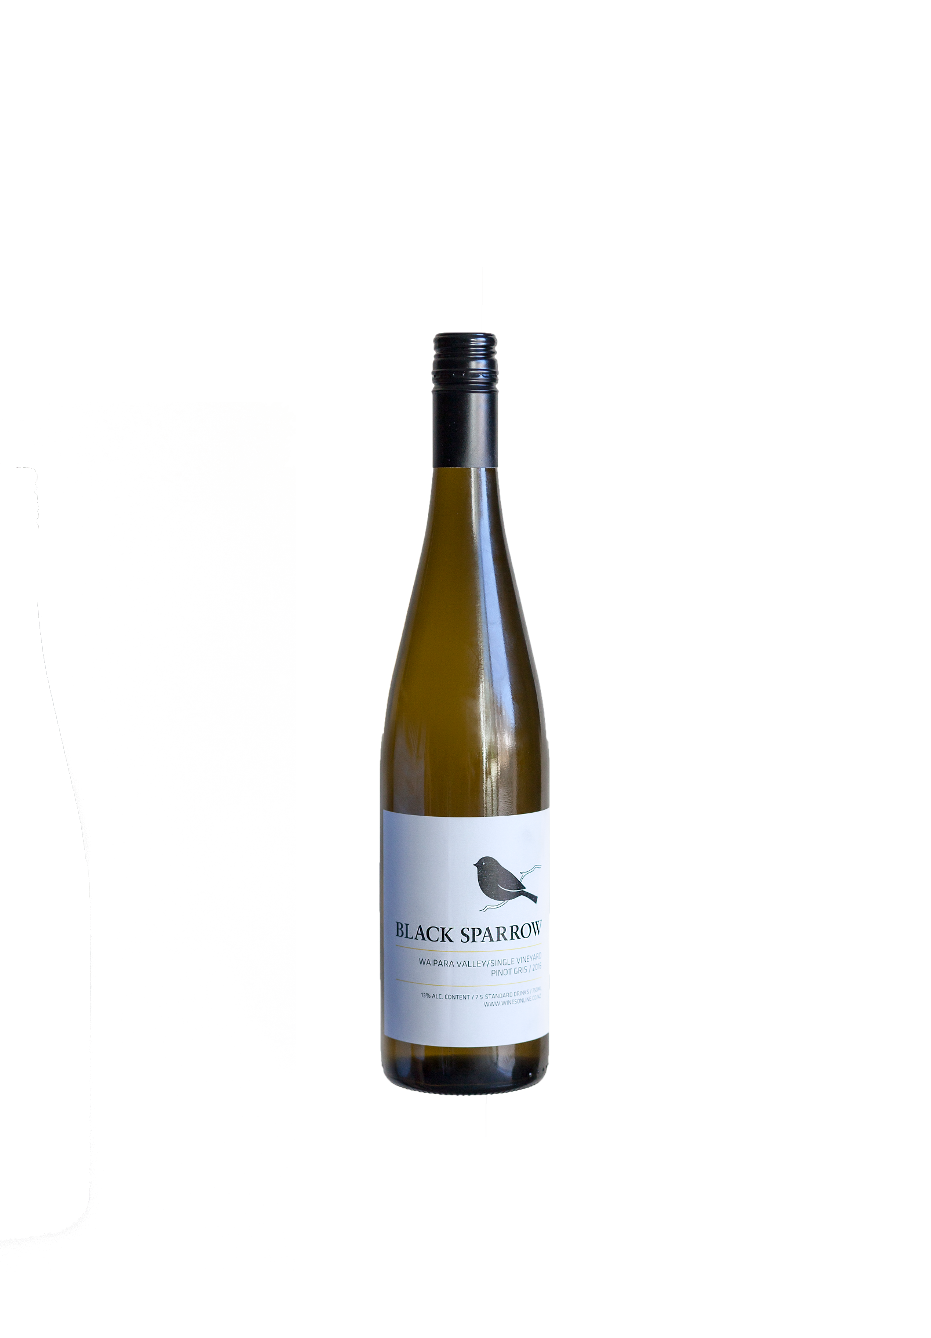 Black Sparrow Waipara Valley 'Single Vineyard' Pinot Gris 2016